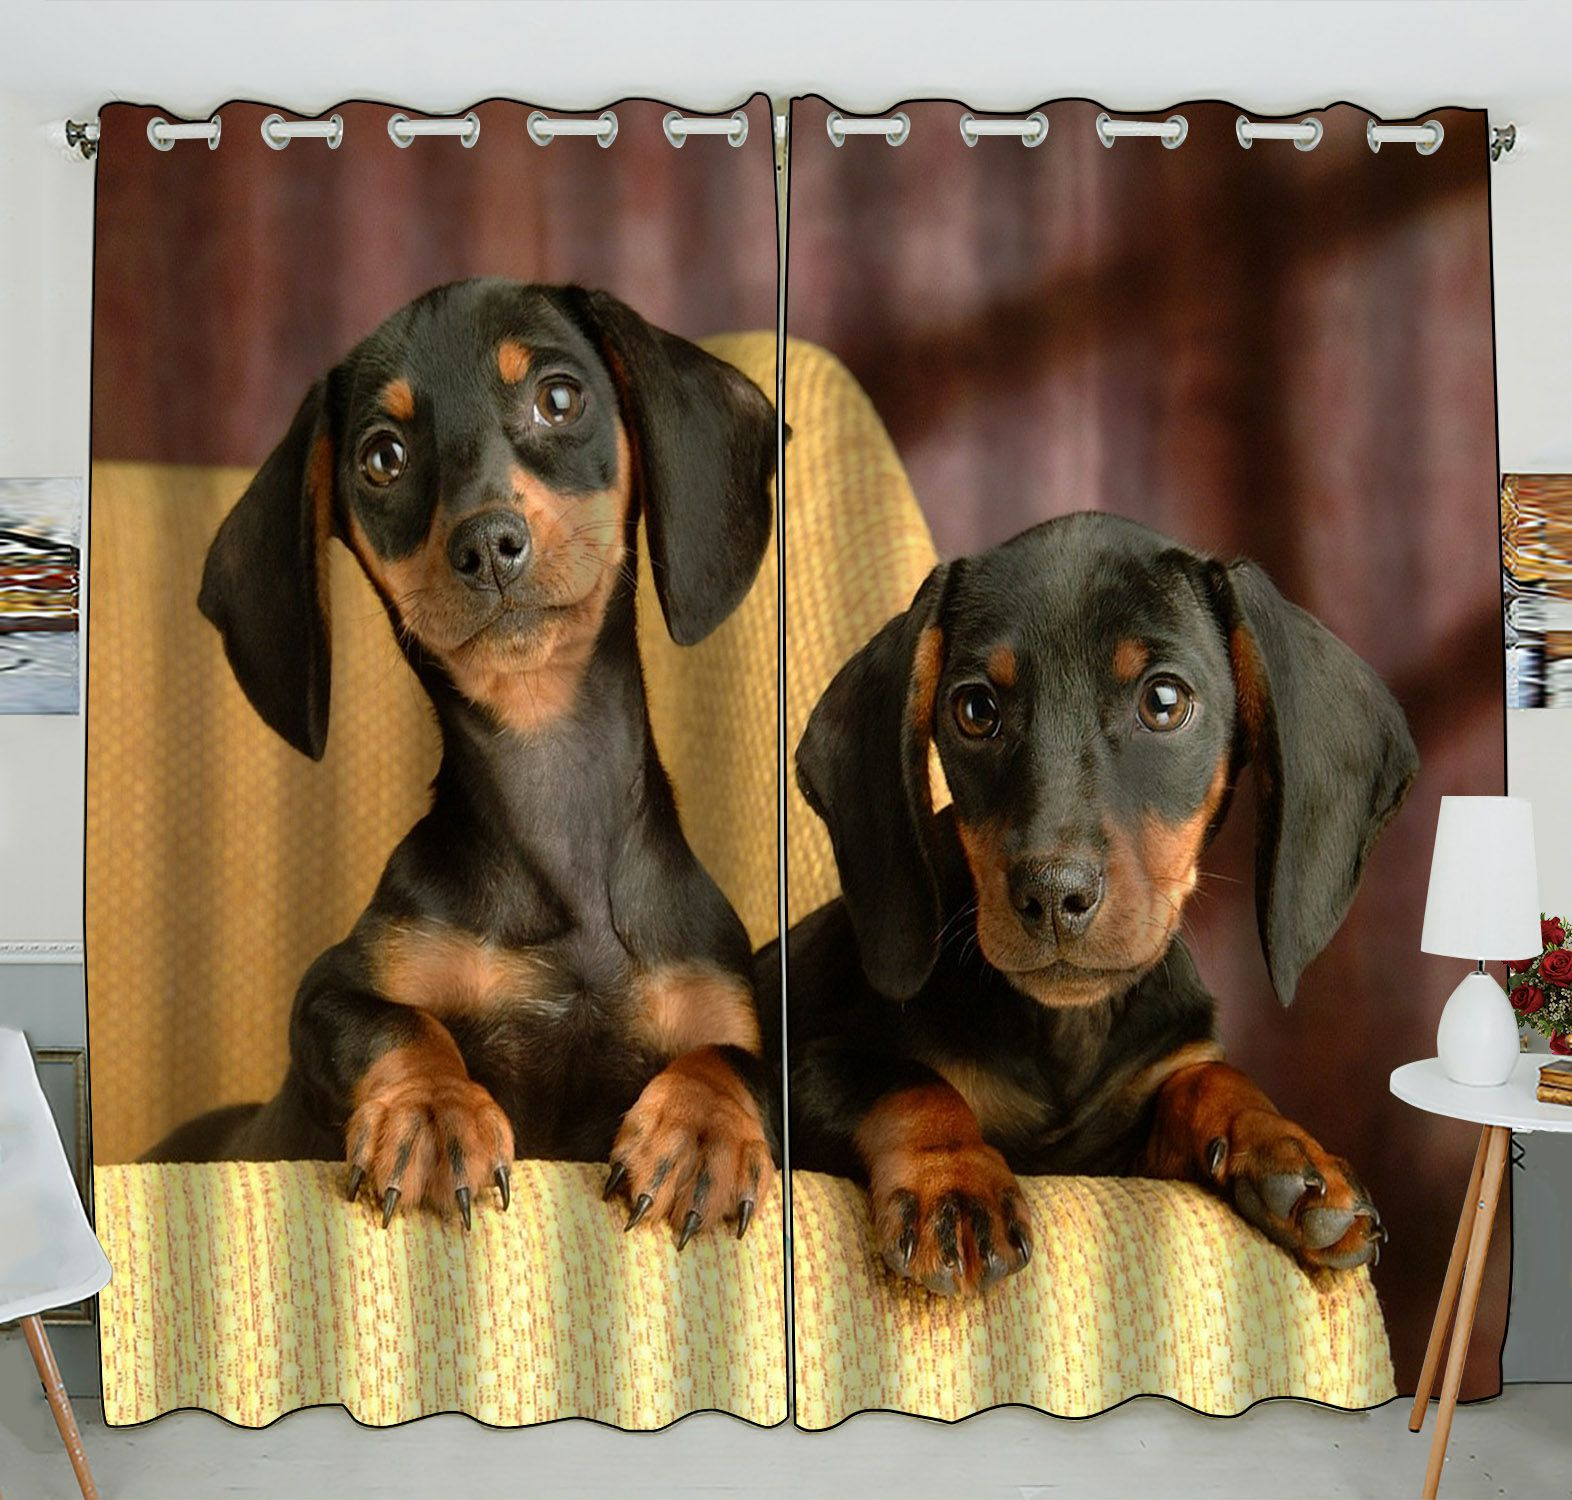 ZKGK Dachshund Window Curtain Drapery/Panels/Treatment For Living Room Bedroom Kids Rooms 52x84 inches Two Panel